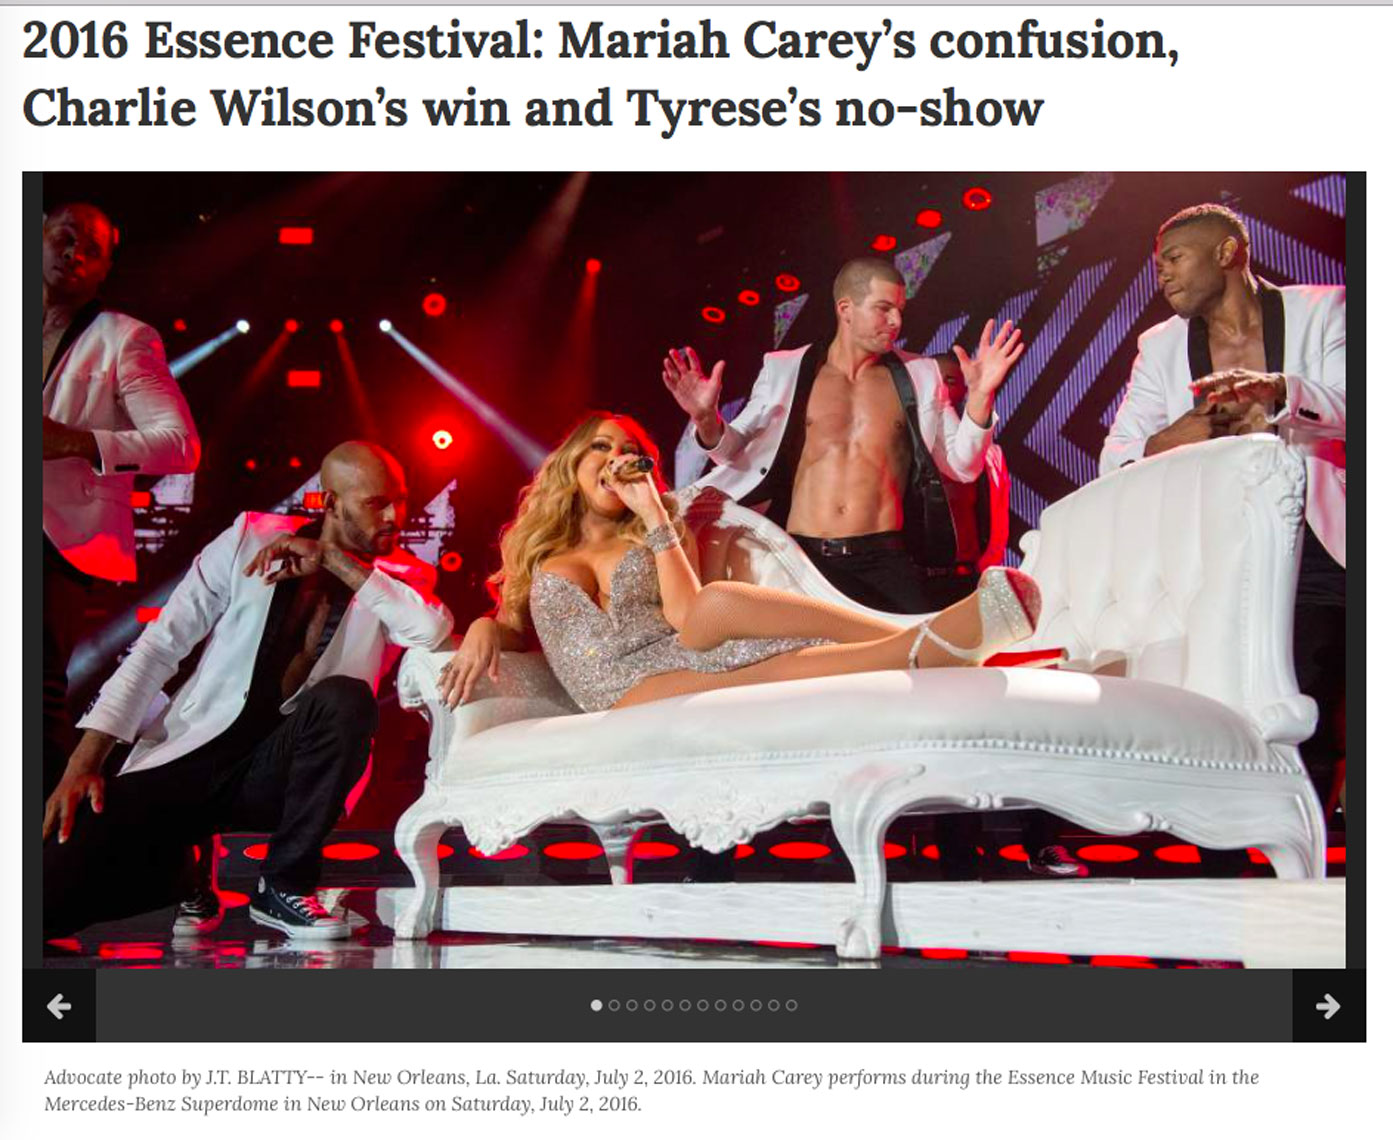 Mariah-Carey-carried-onto-stage-2016